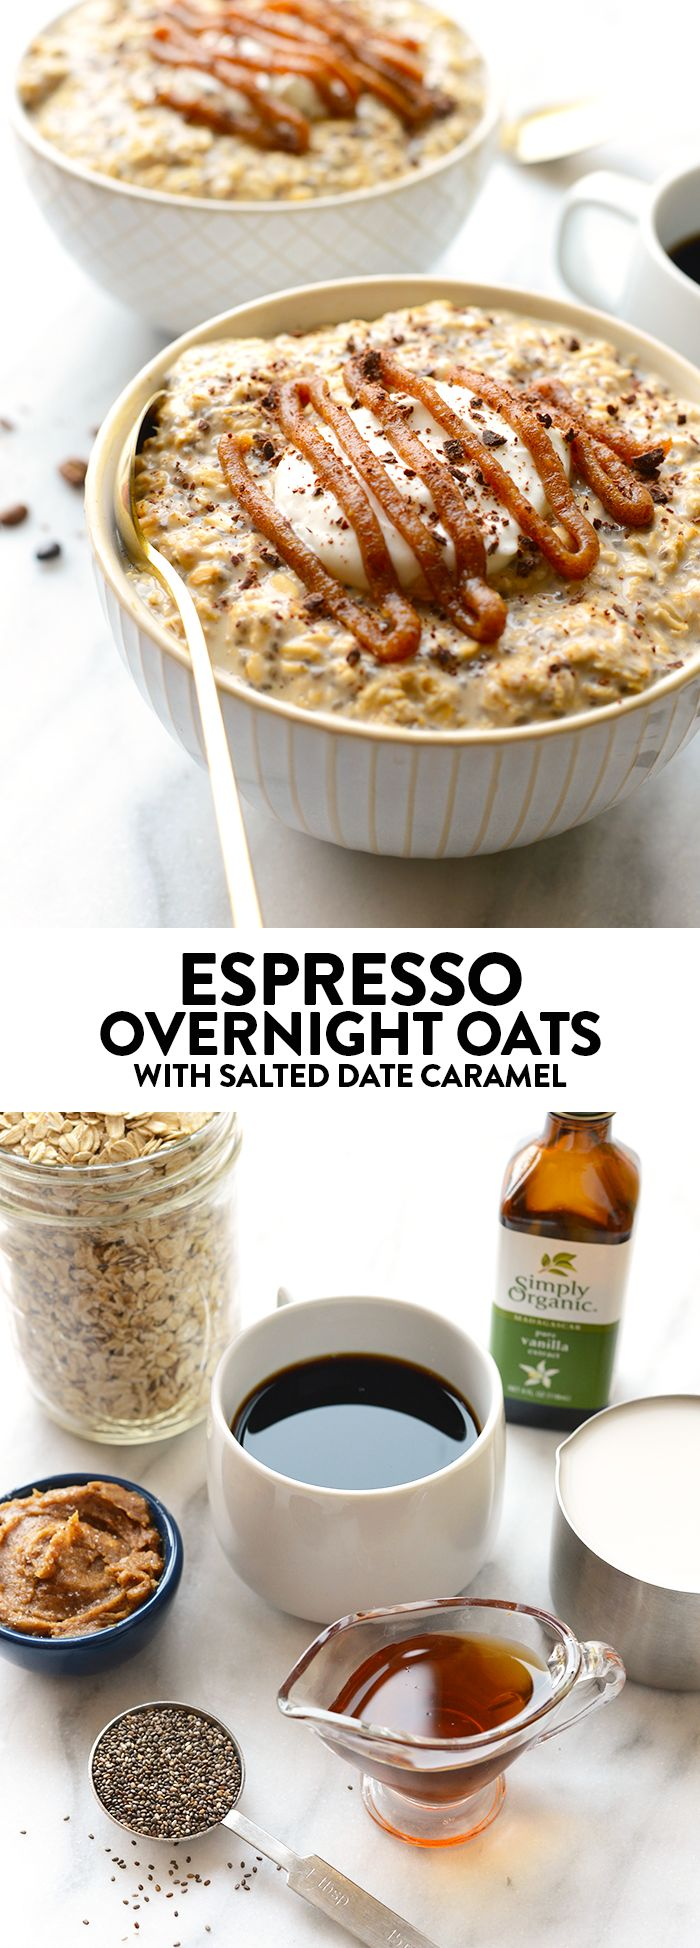 Espresso Overnight Oats with Salted Date Caramel - Soak your oats in brewed coffee overnight and top them with salted date caramel for a yummy treat in the morning.